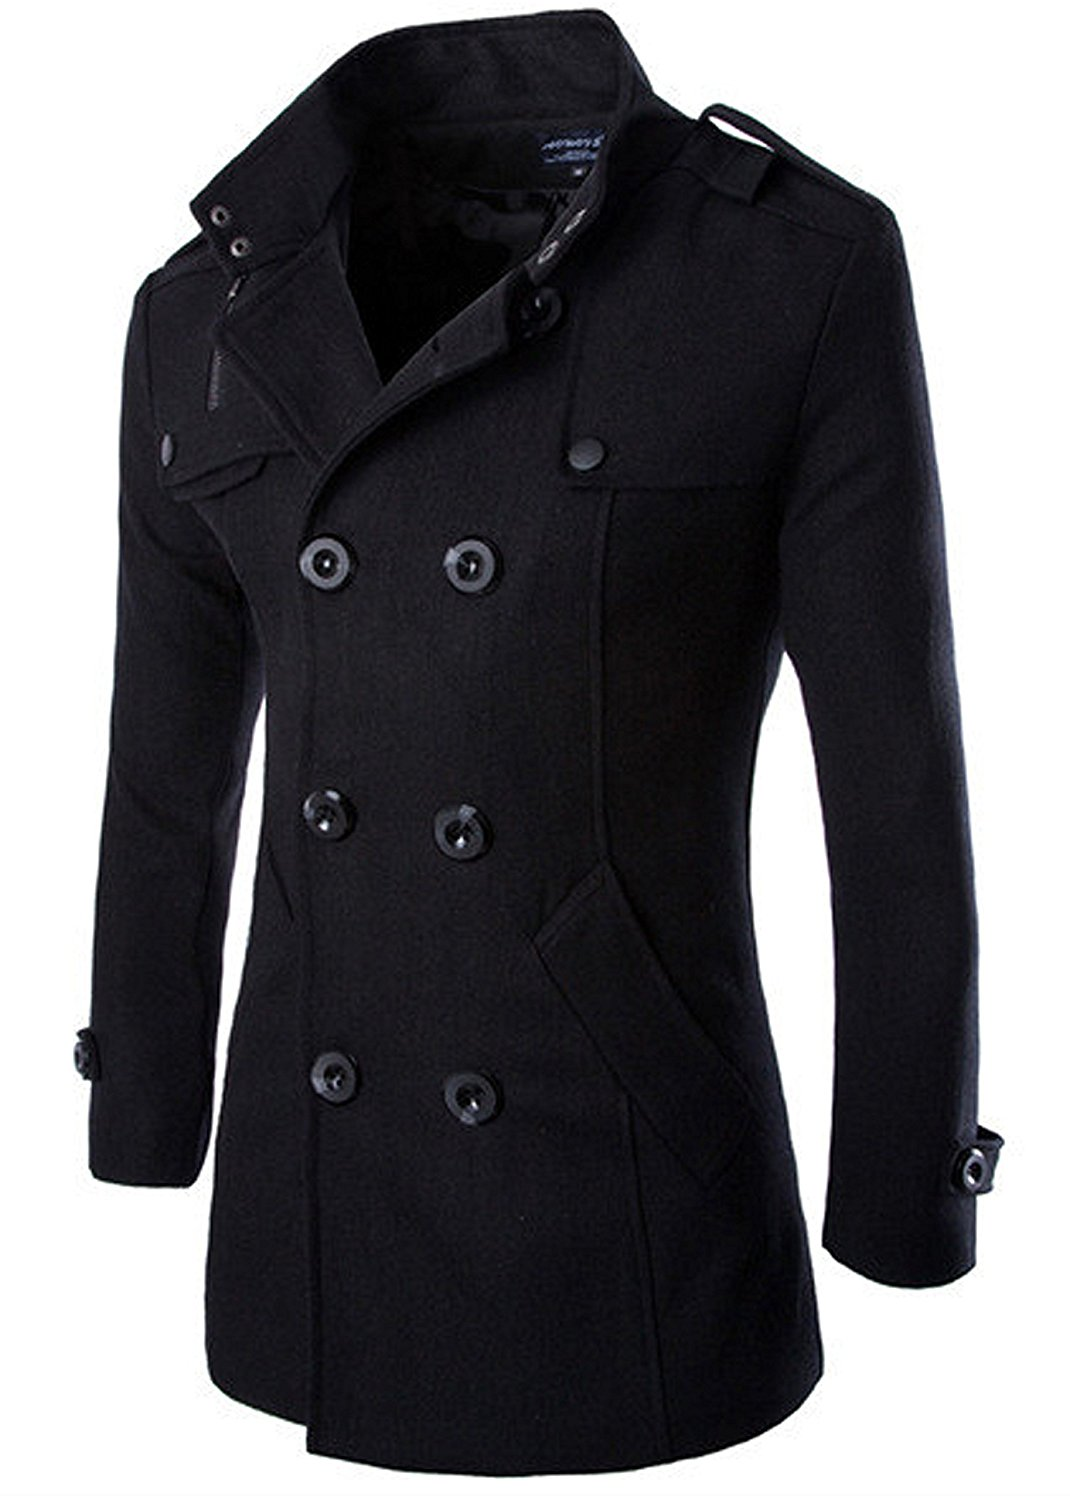 Fensajomon Mens Classic Double Breasted Slim Fit Pea Coat Trench Jacket